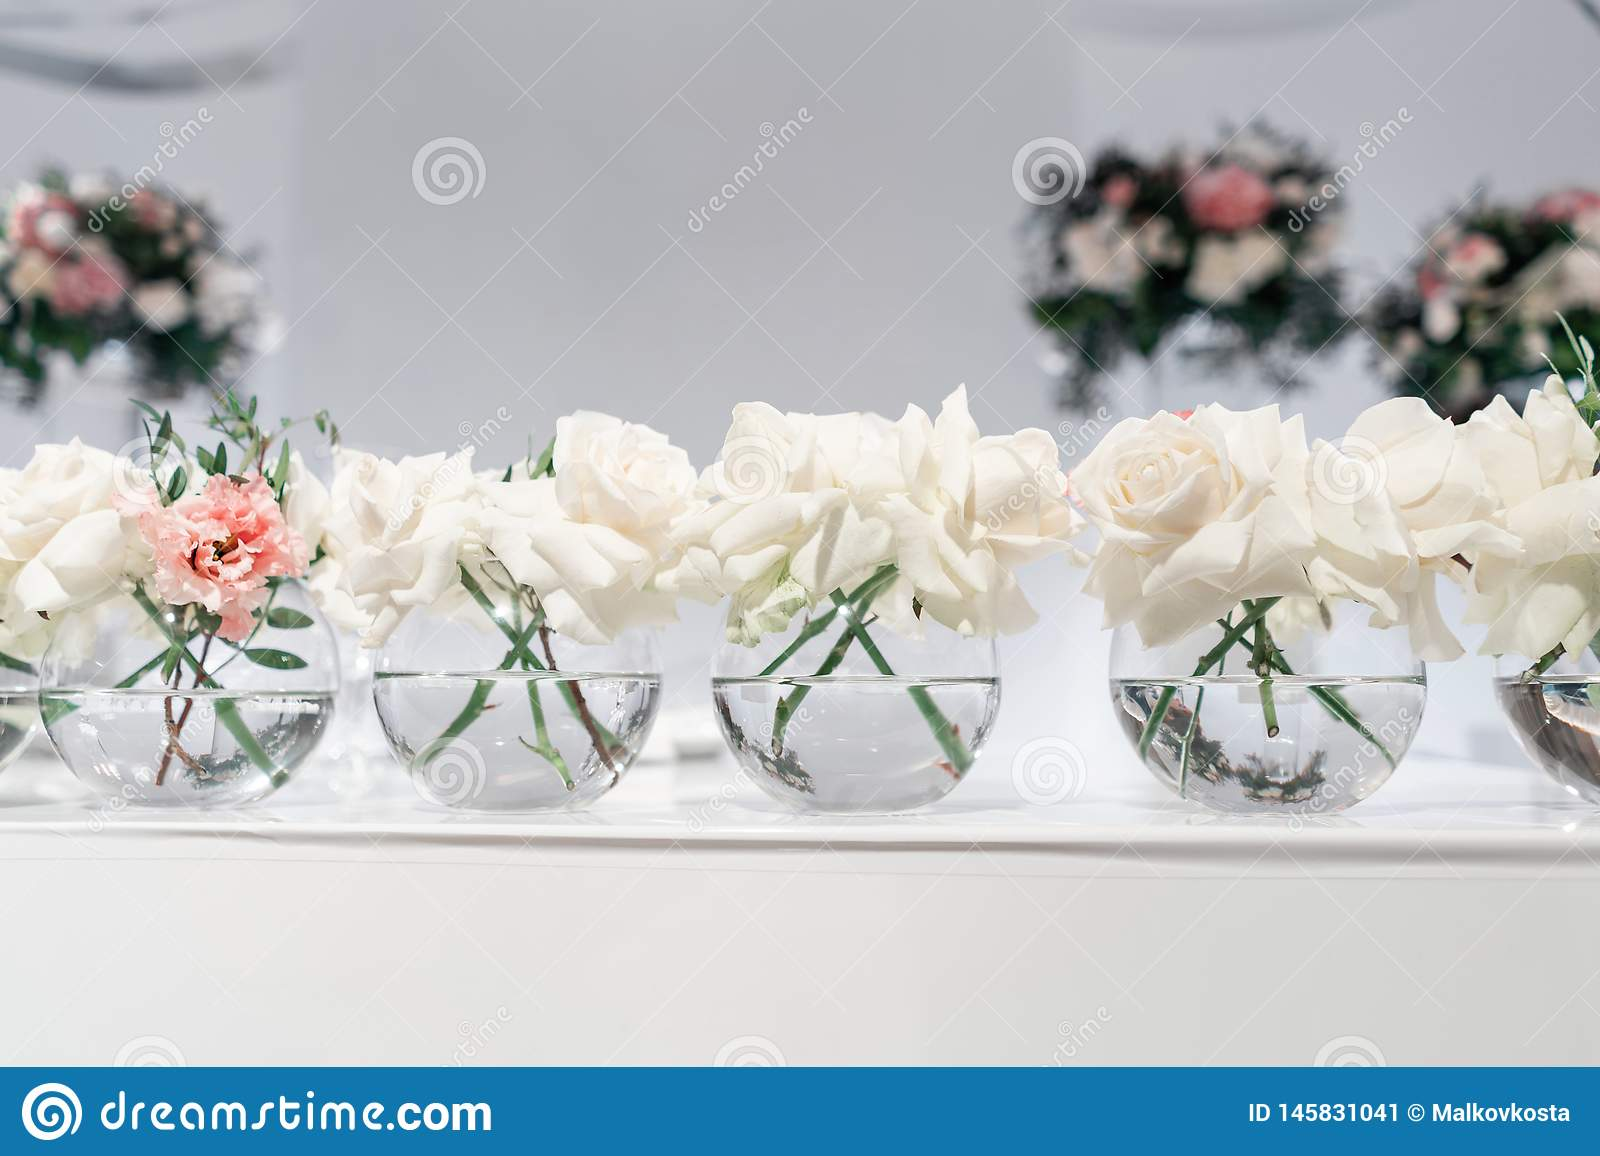 Small Flower Arrangements In Ball Glass Vases The Table Of The